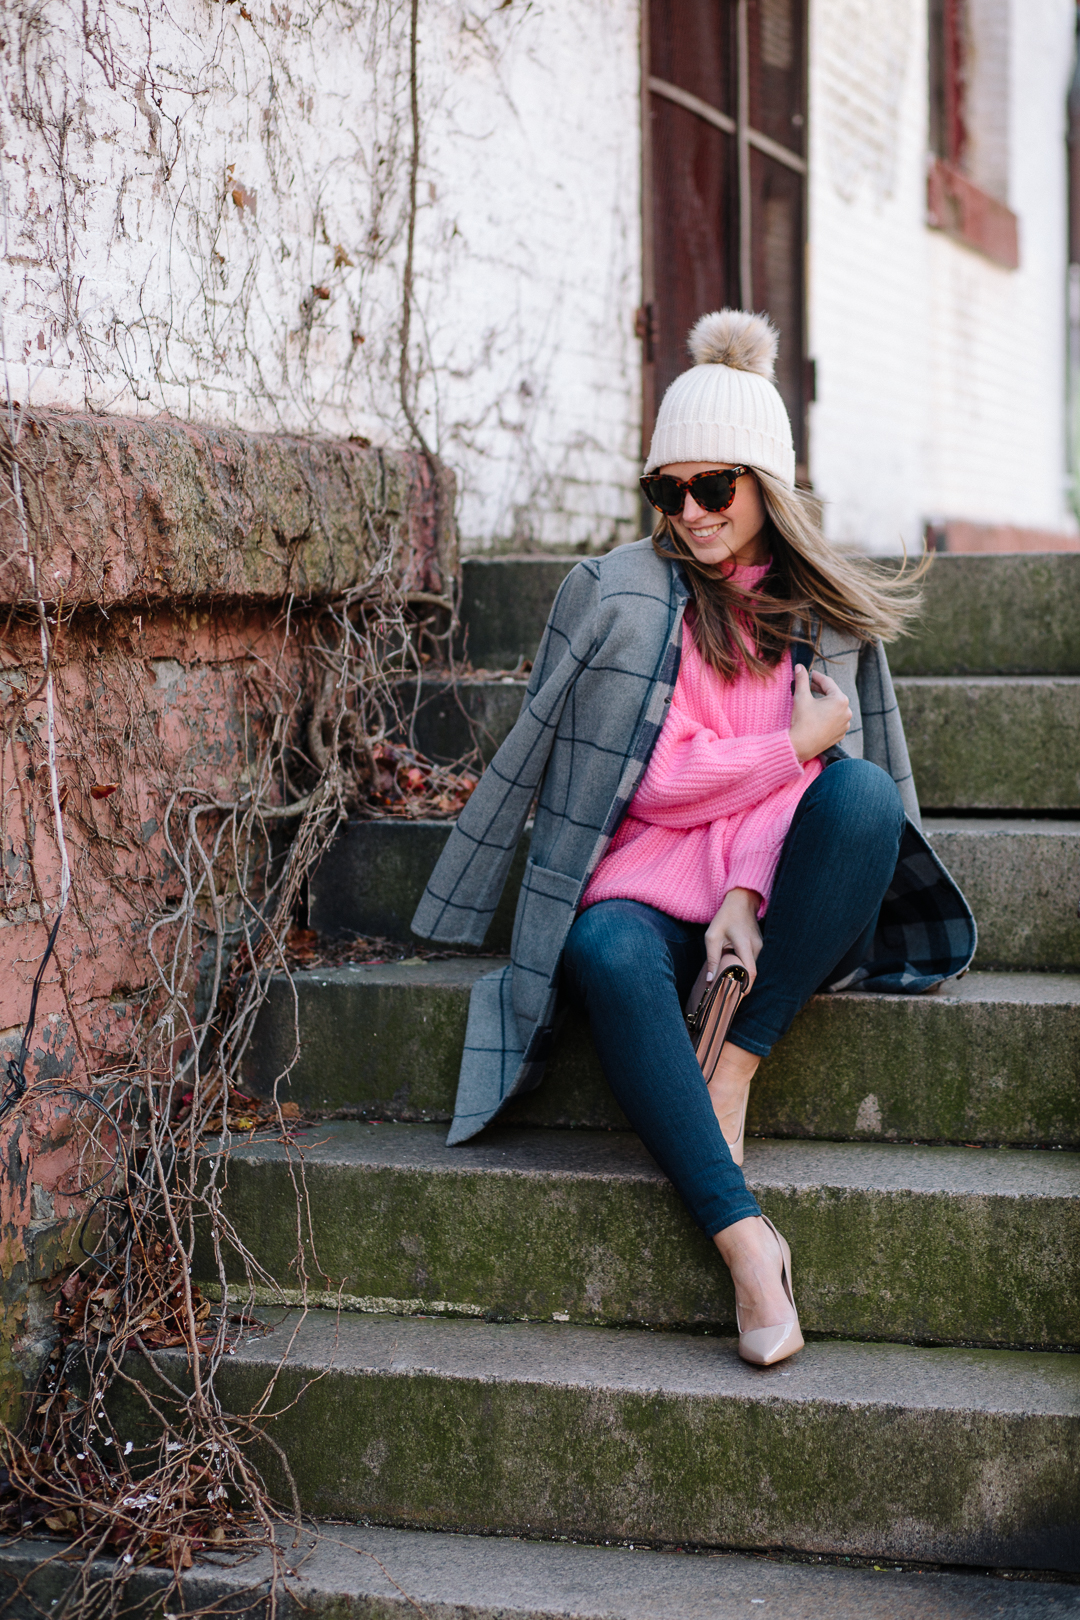 Wearing Mango and Zappos for a cozy chic look